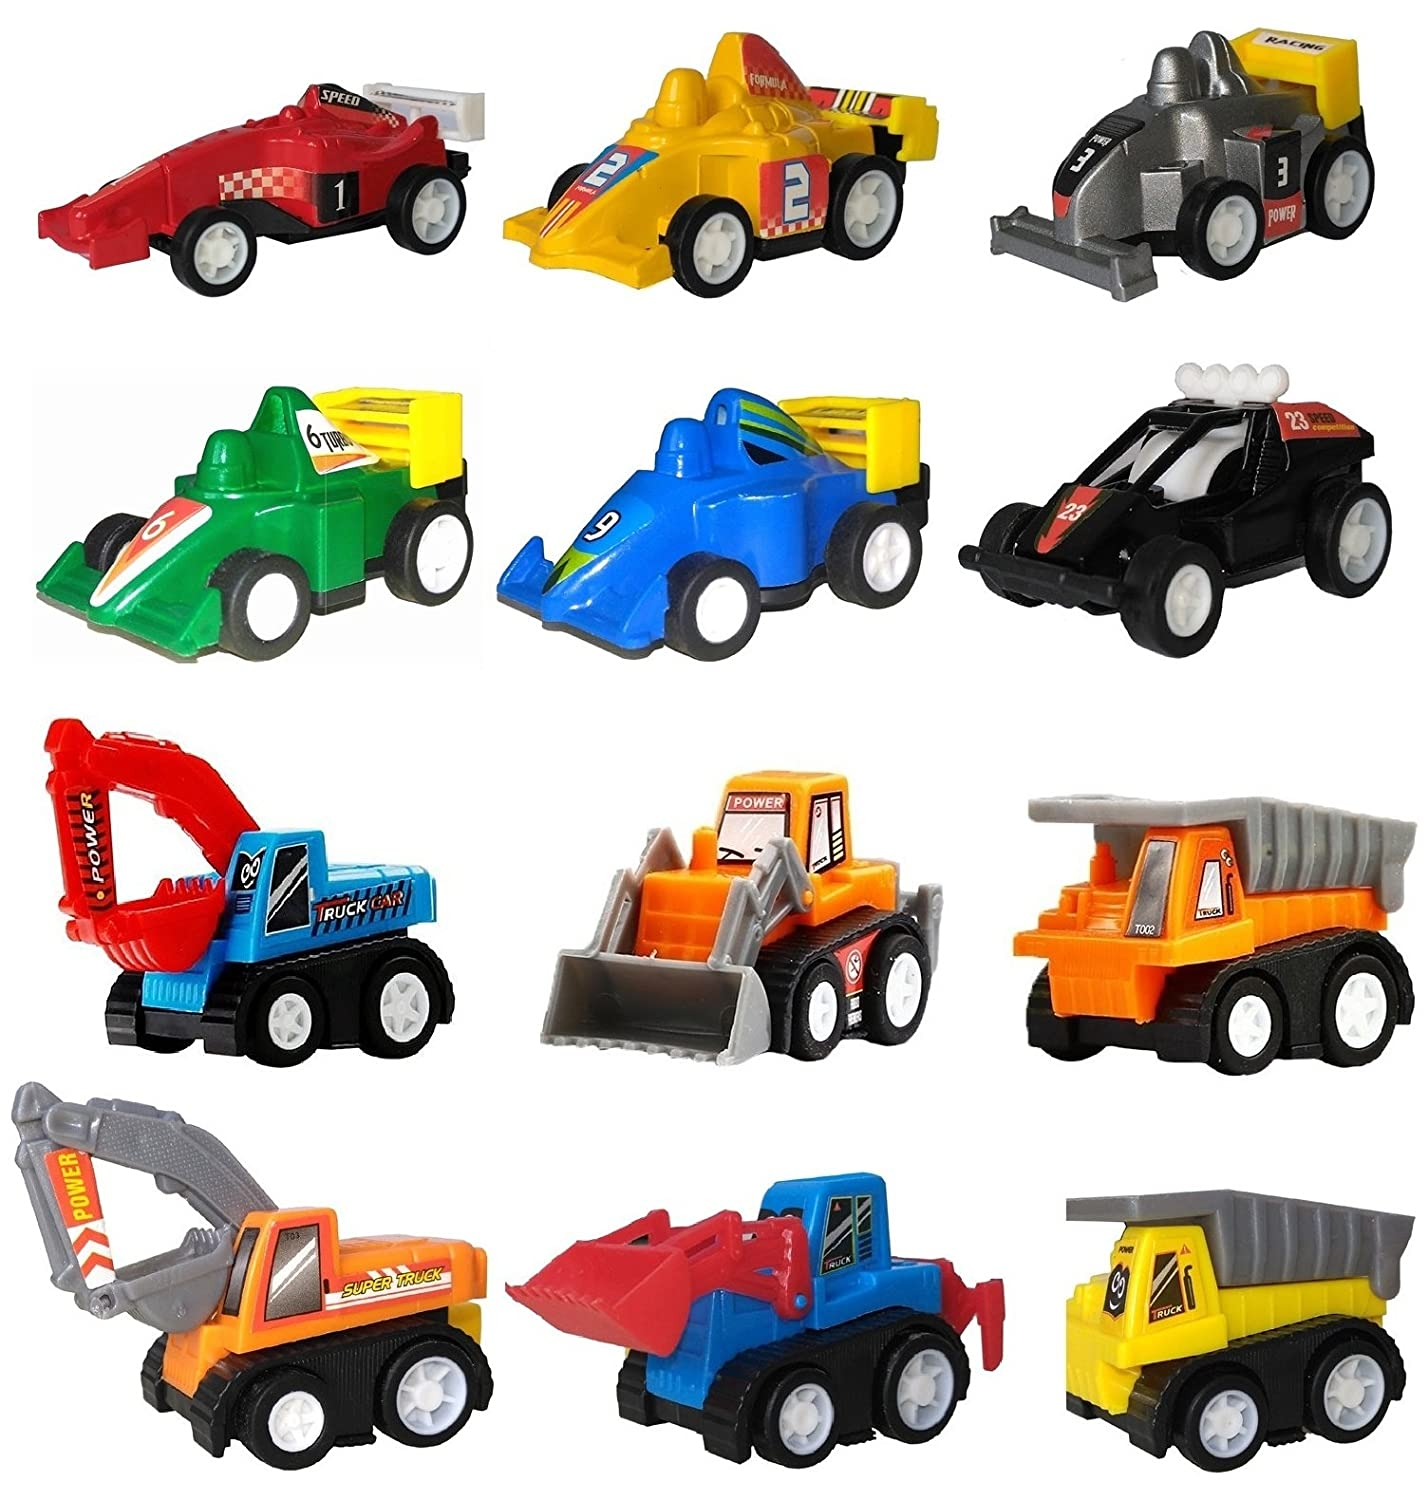 WINONE Pull Back Cars Toys For 3 4 5 Year Old Boys Girls 12 Pack Kids Vehicles And Racing Easter Egg Filler Party Favors